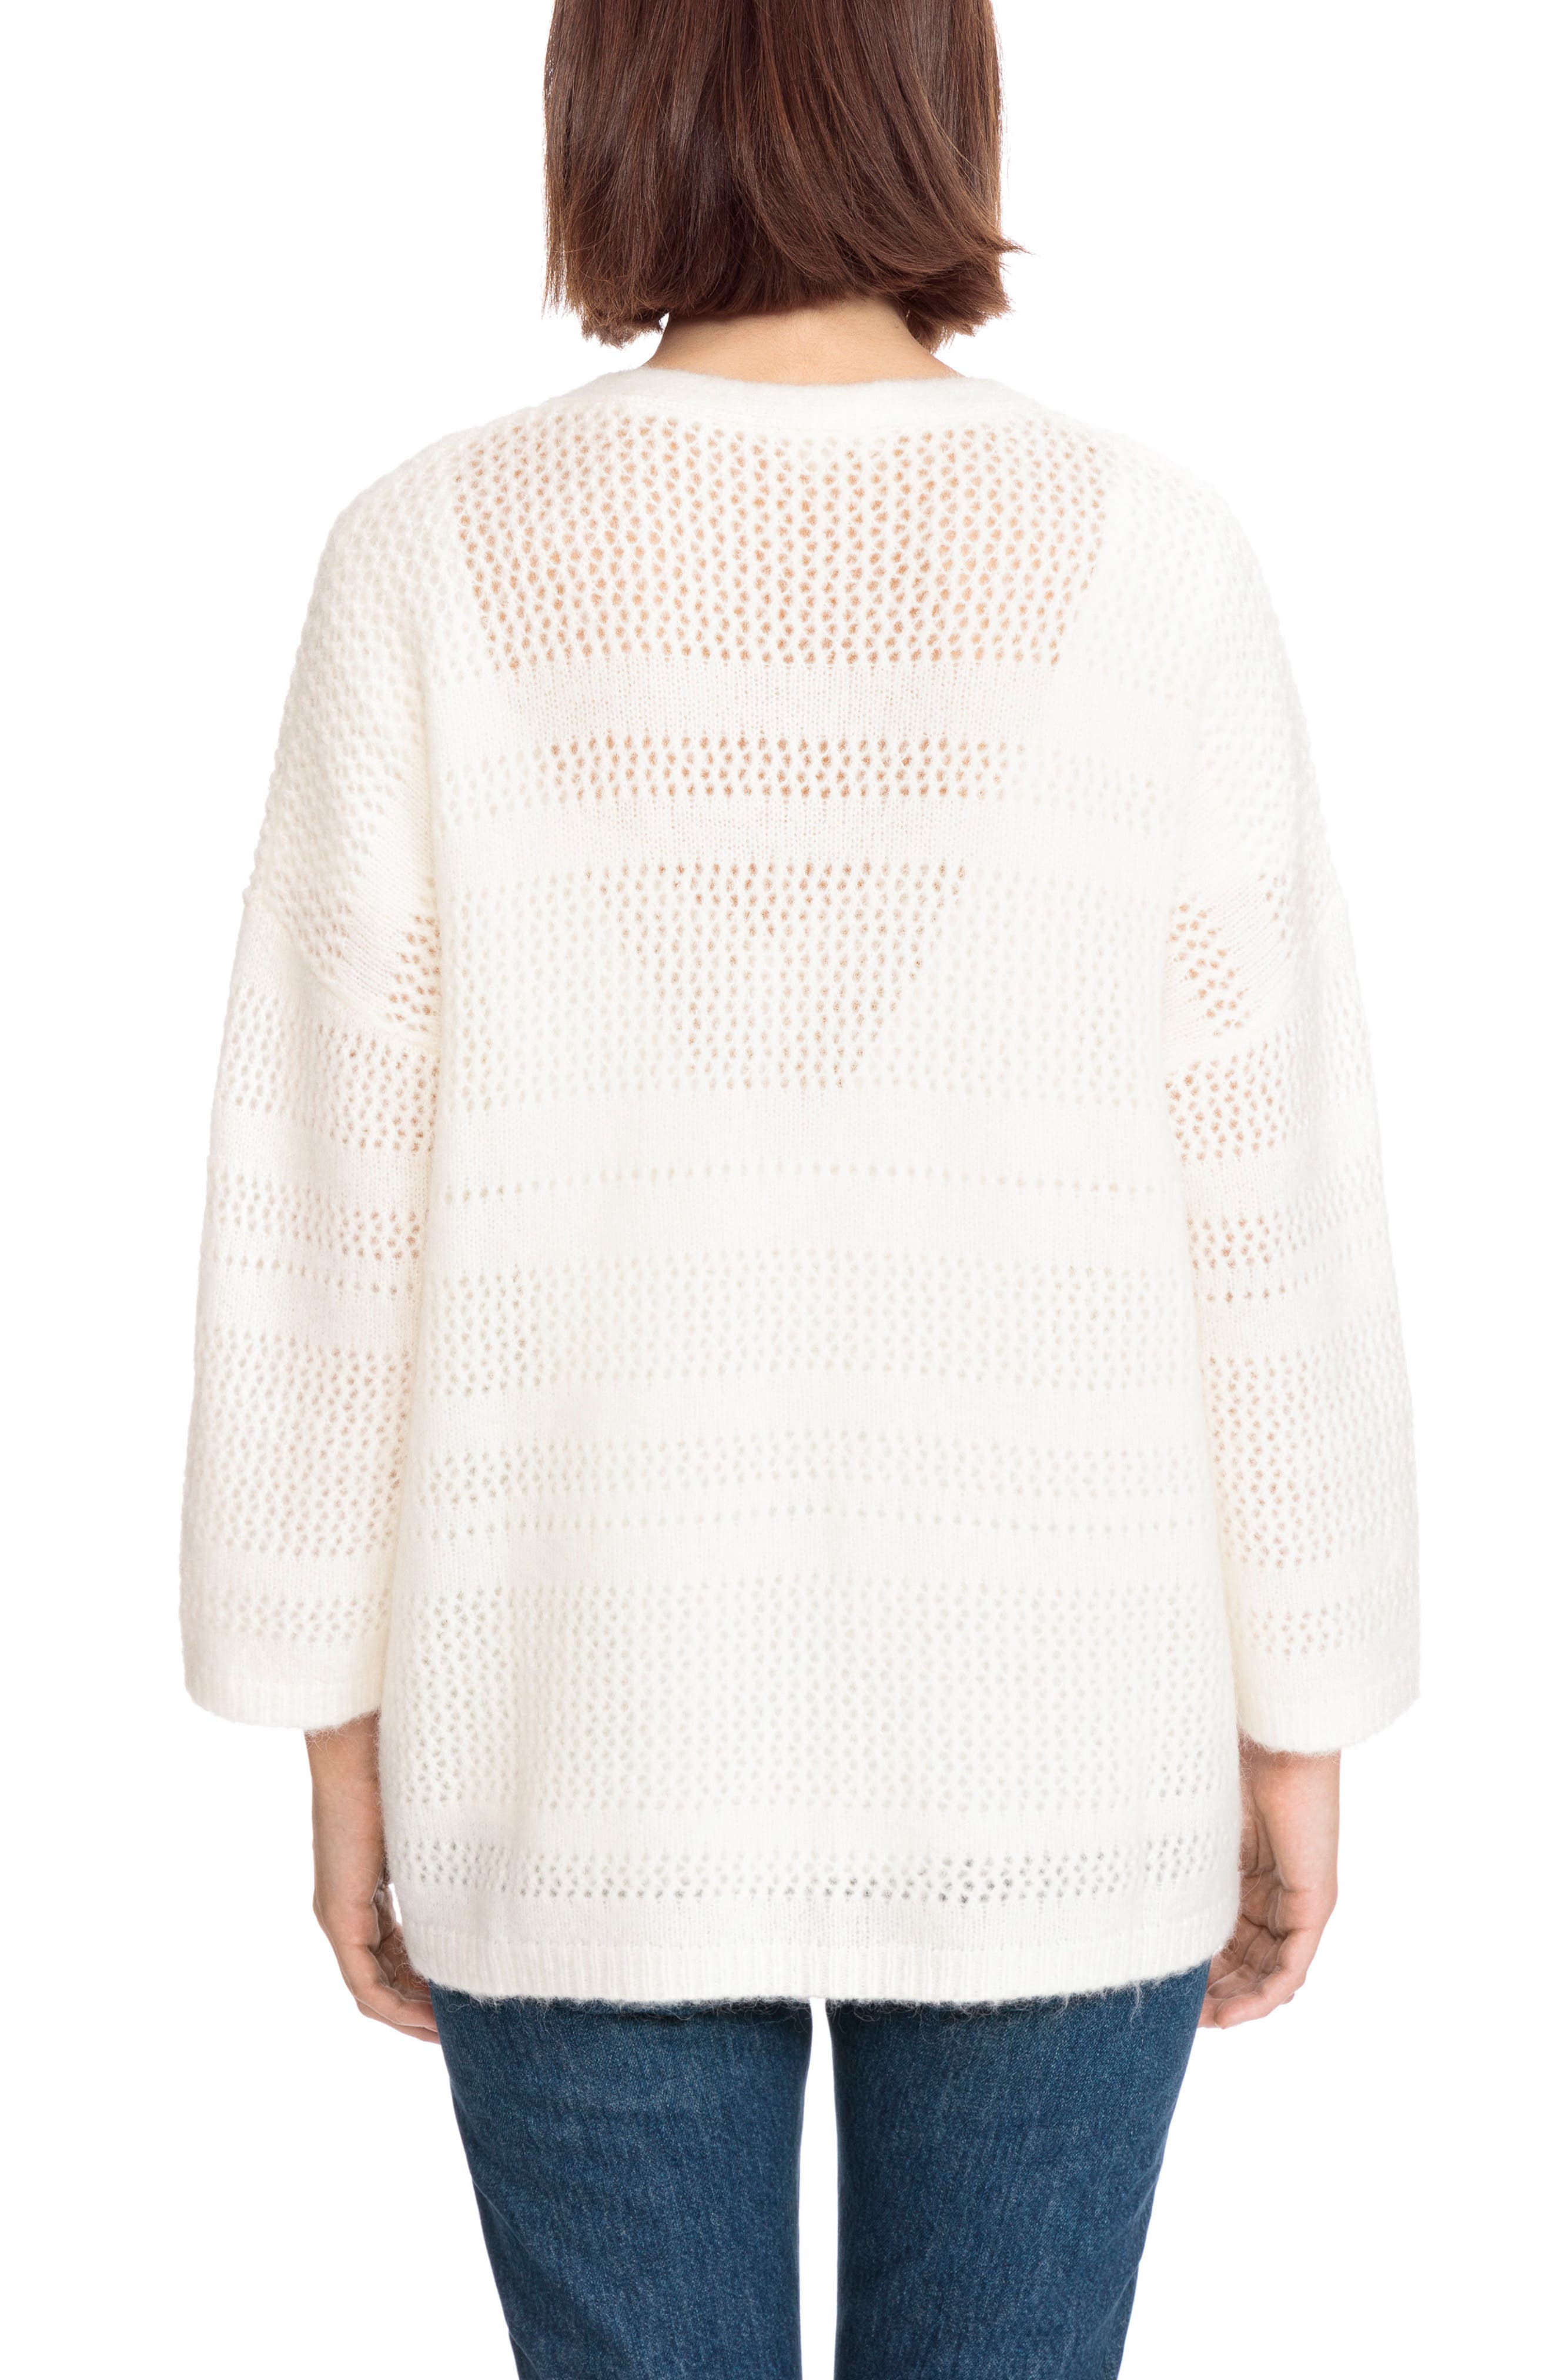 Firmin Cardigan,                             Alternate thumbnail 3, color,                             Off White